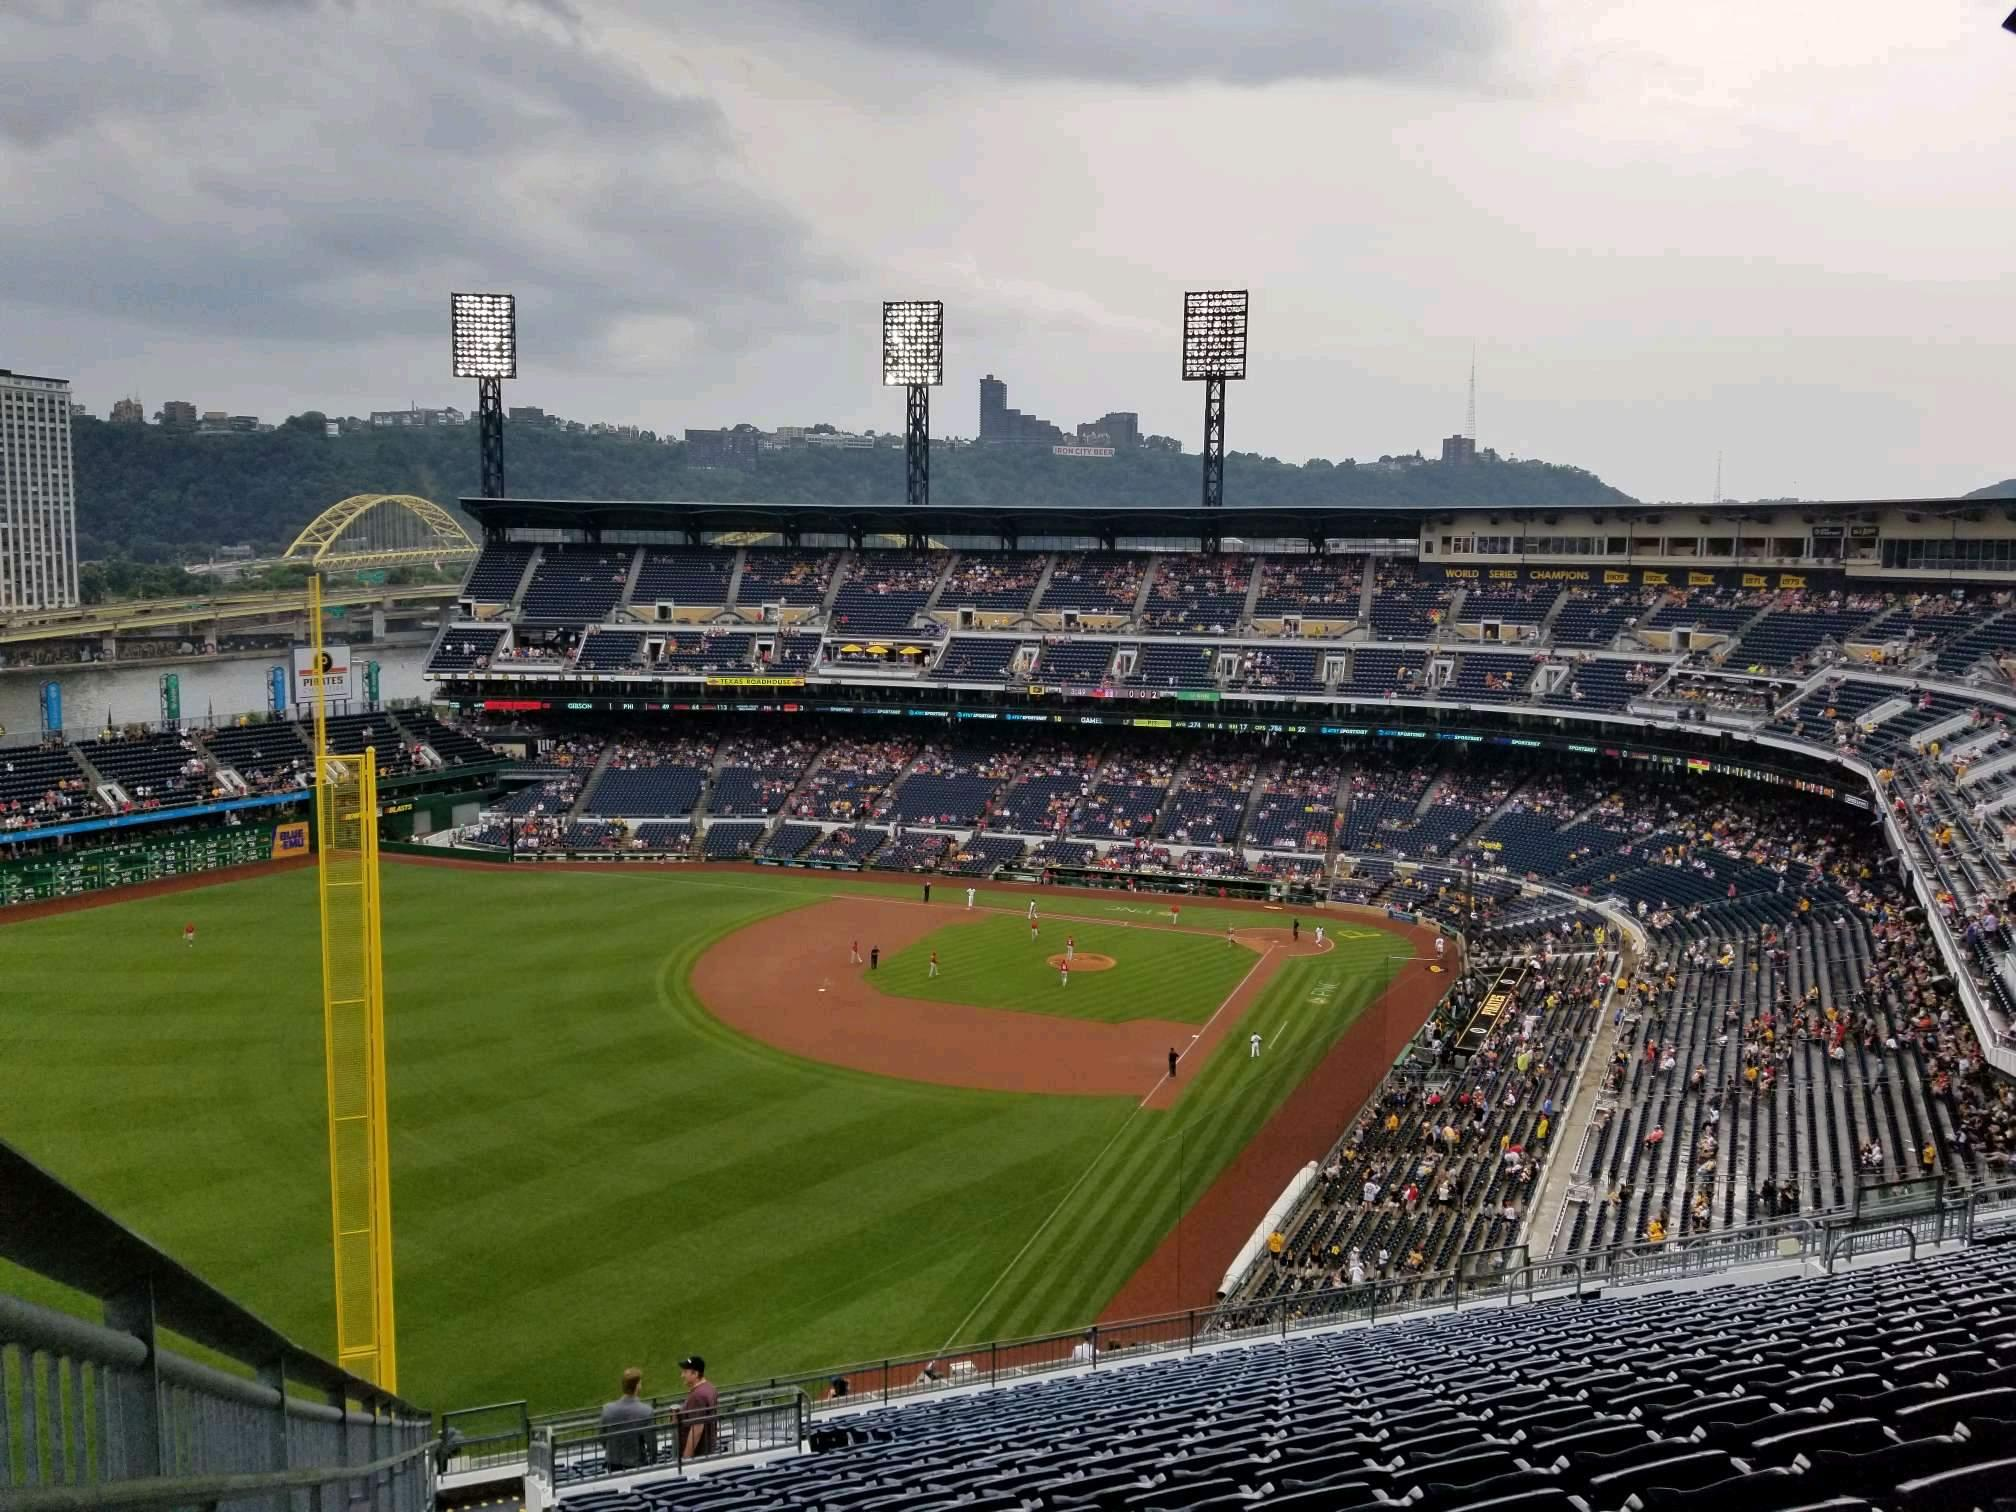 PNC Park Section 333 Row y Seat 30